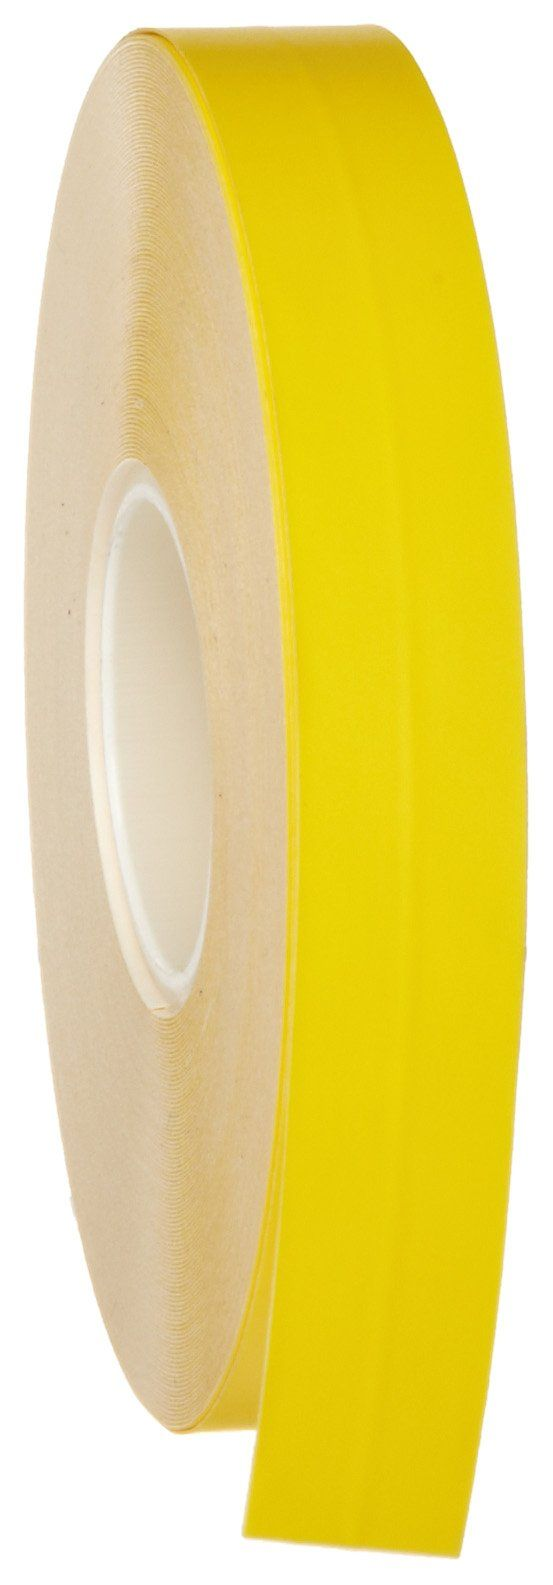 Brady 113257 50 Length 1 2 Width B 933 Vinyl Yellow Vinyl Border Line Tape Ad Length Contemporary Modern Furniture Modern Contemporary Modern Furniture